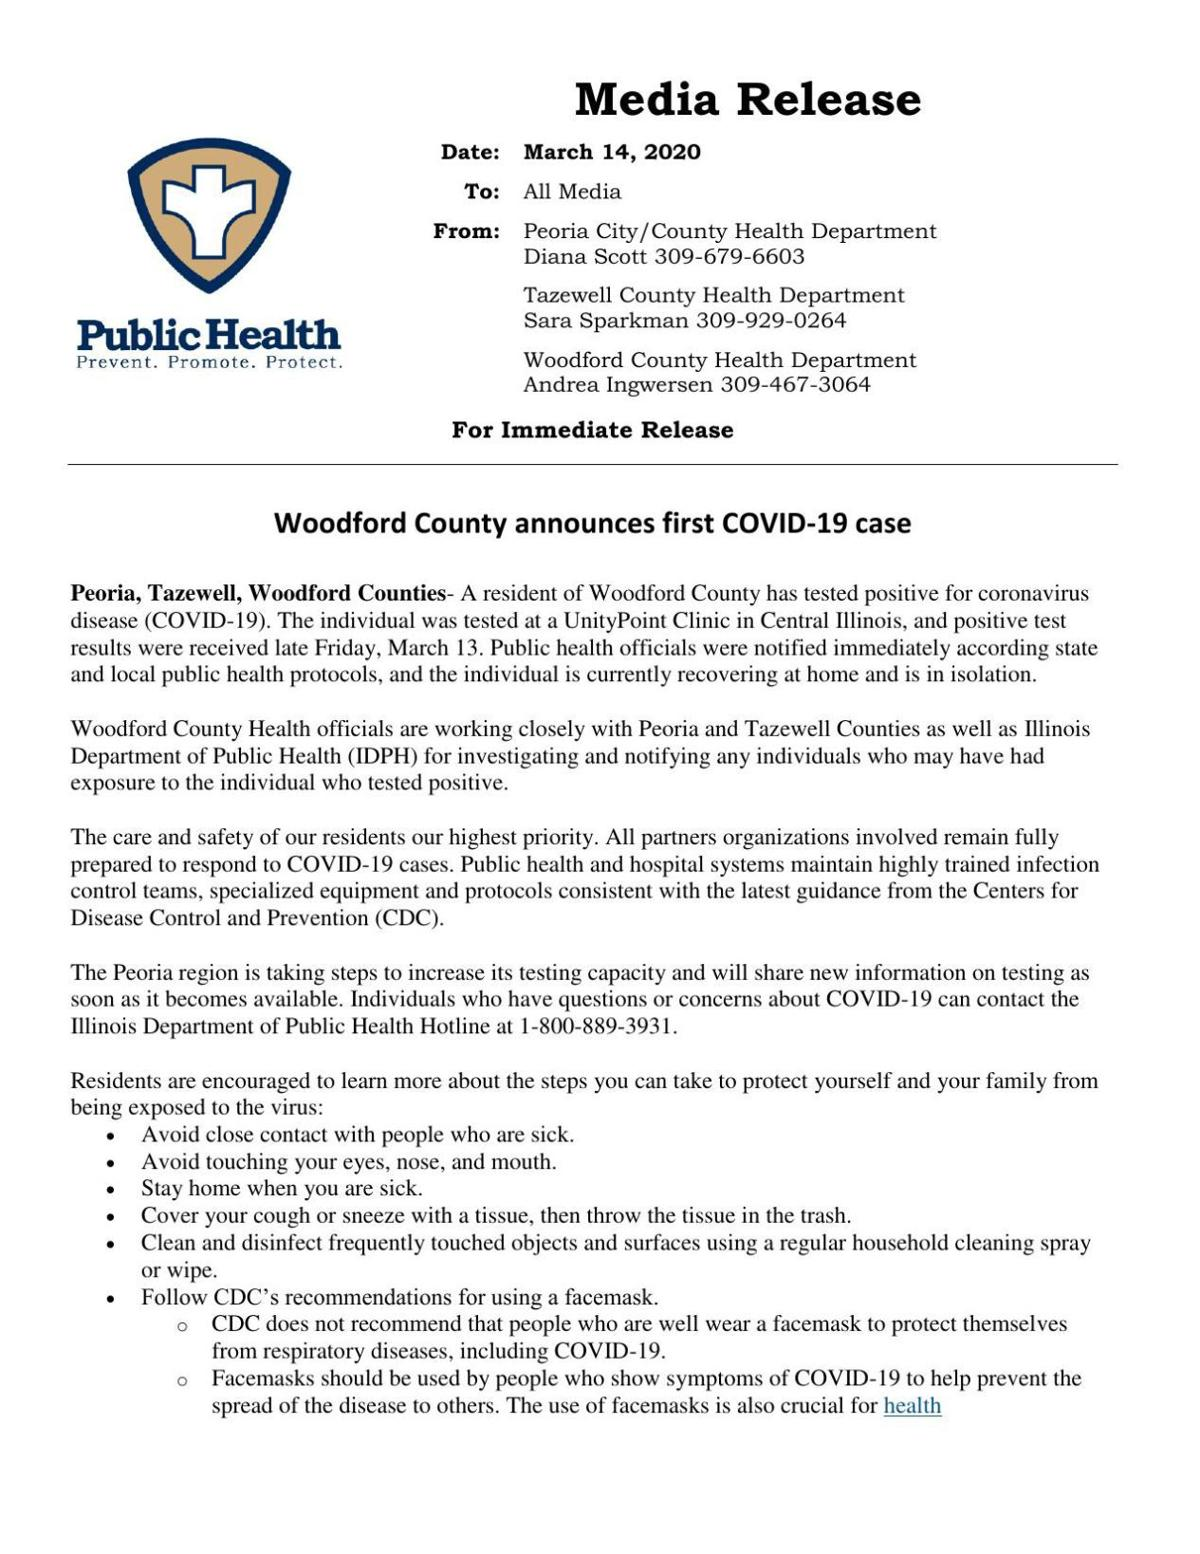 Woodford County announces first COVID-19 case